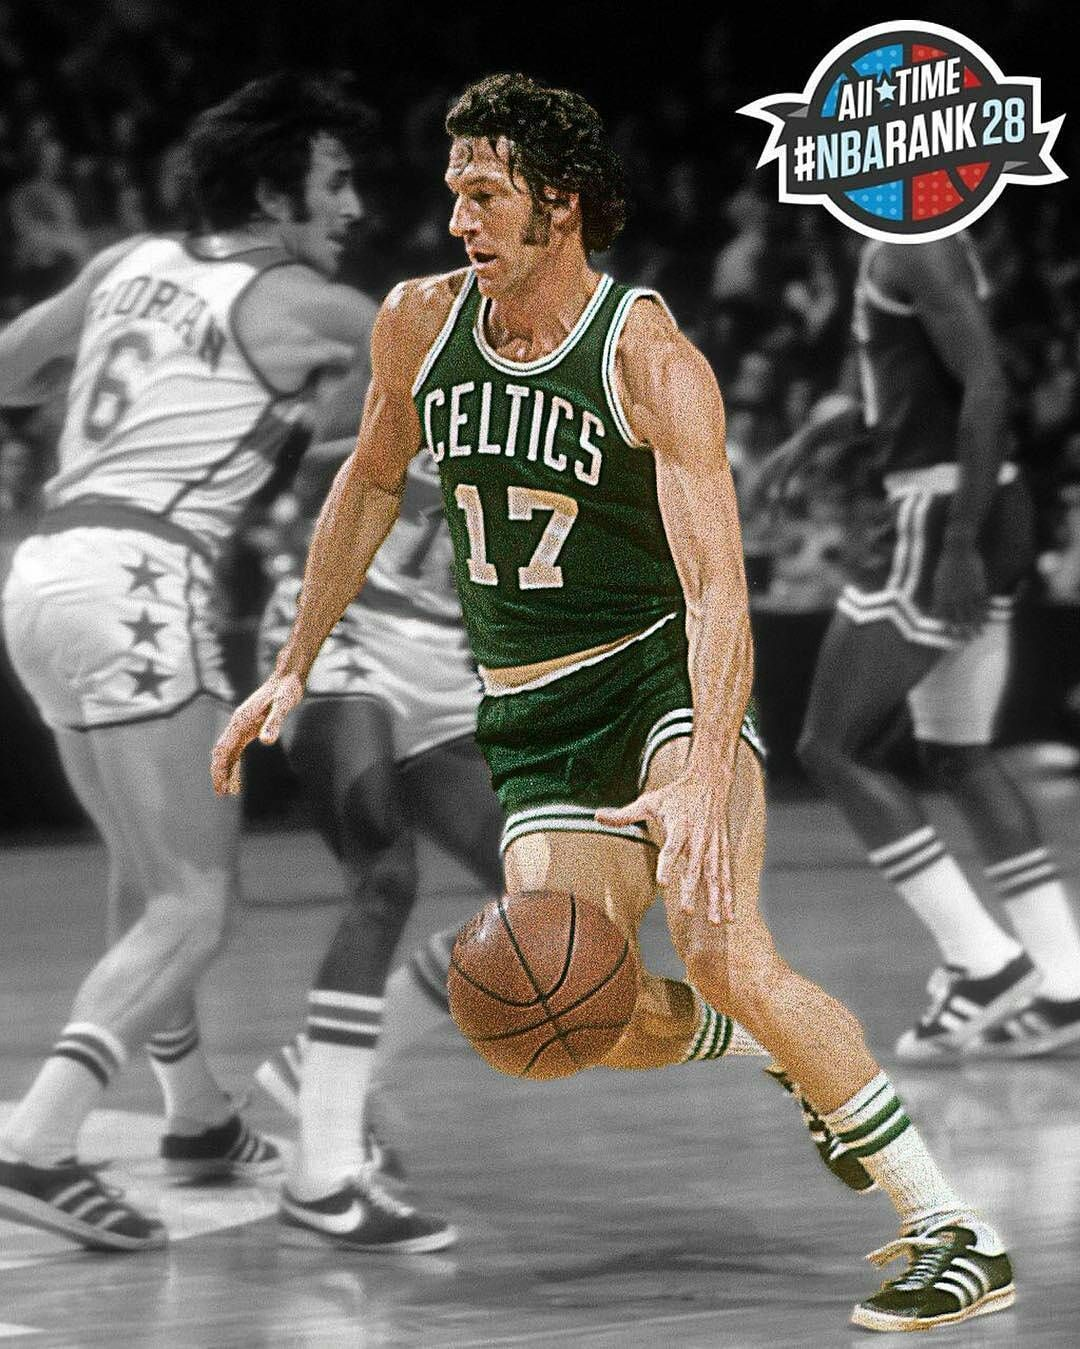 @Regrann from @nbaonespn -  8x NBA Champion John Havlicek is No. 28 in all-time #NBArank. #Regrann